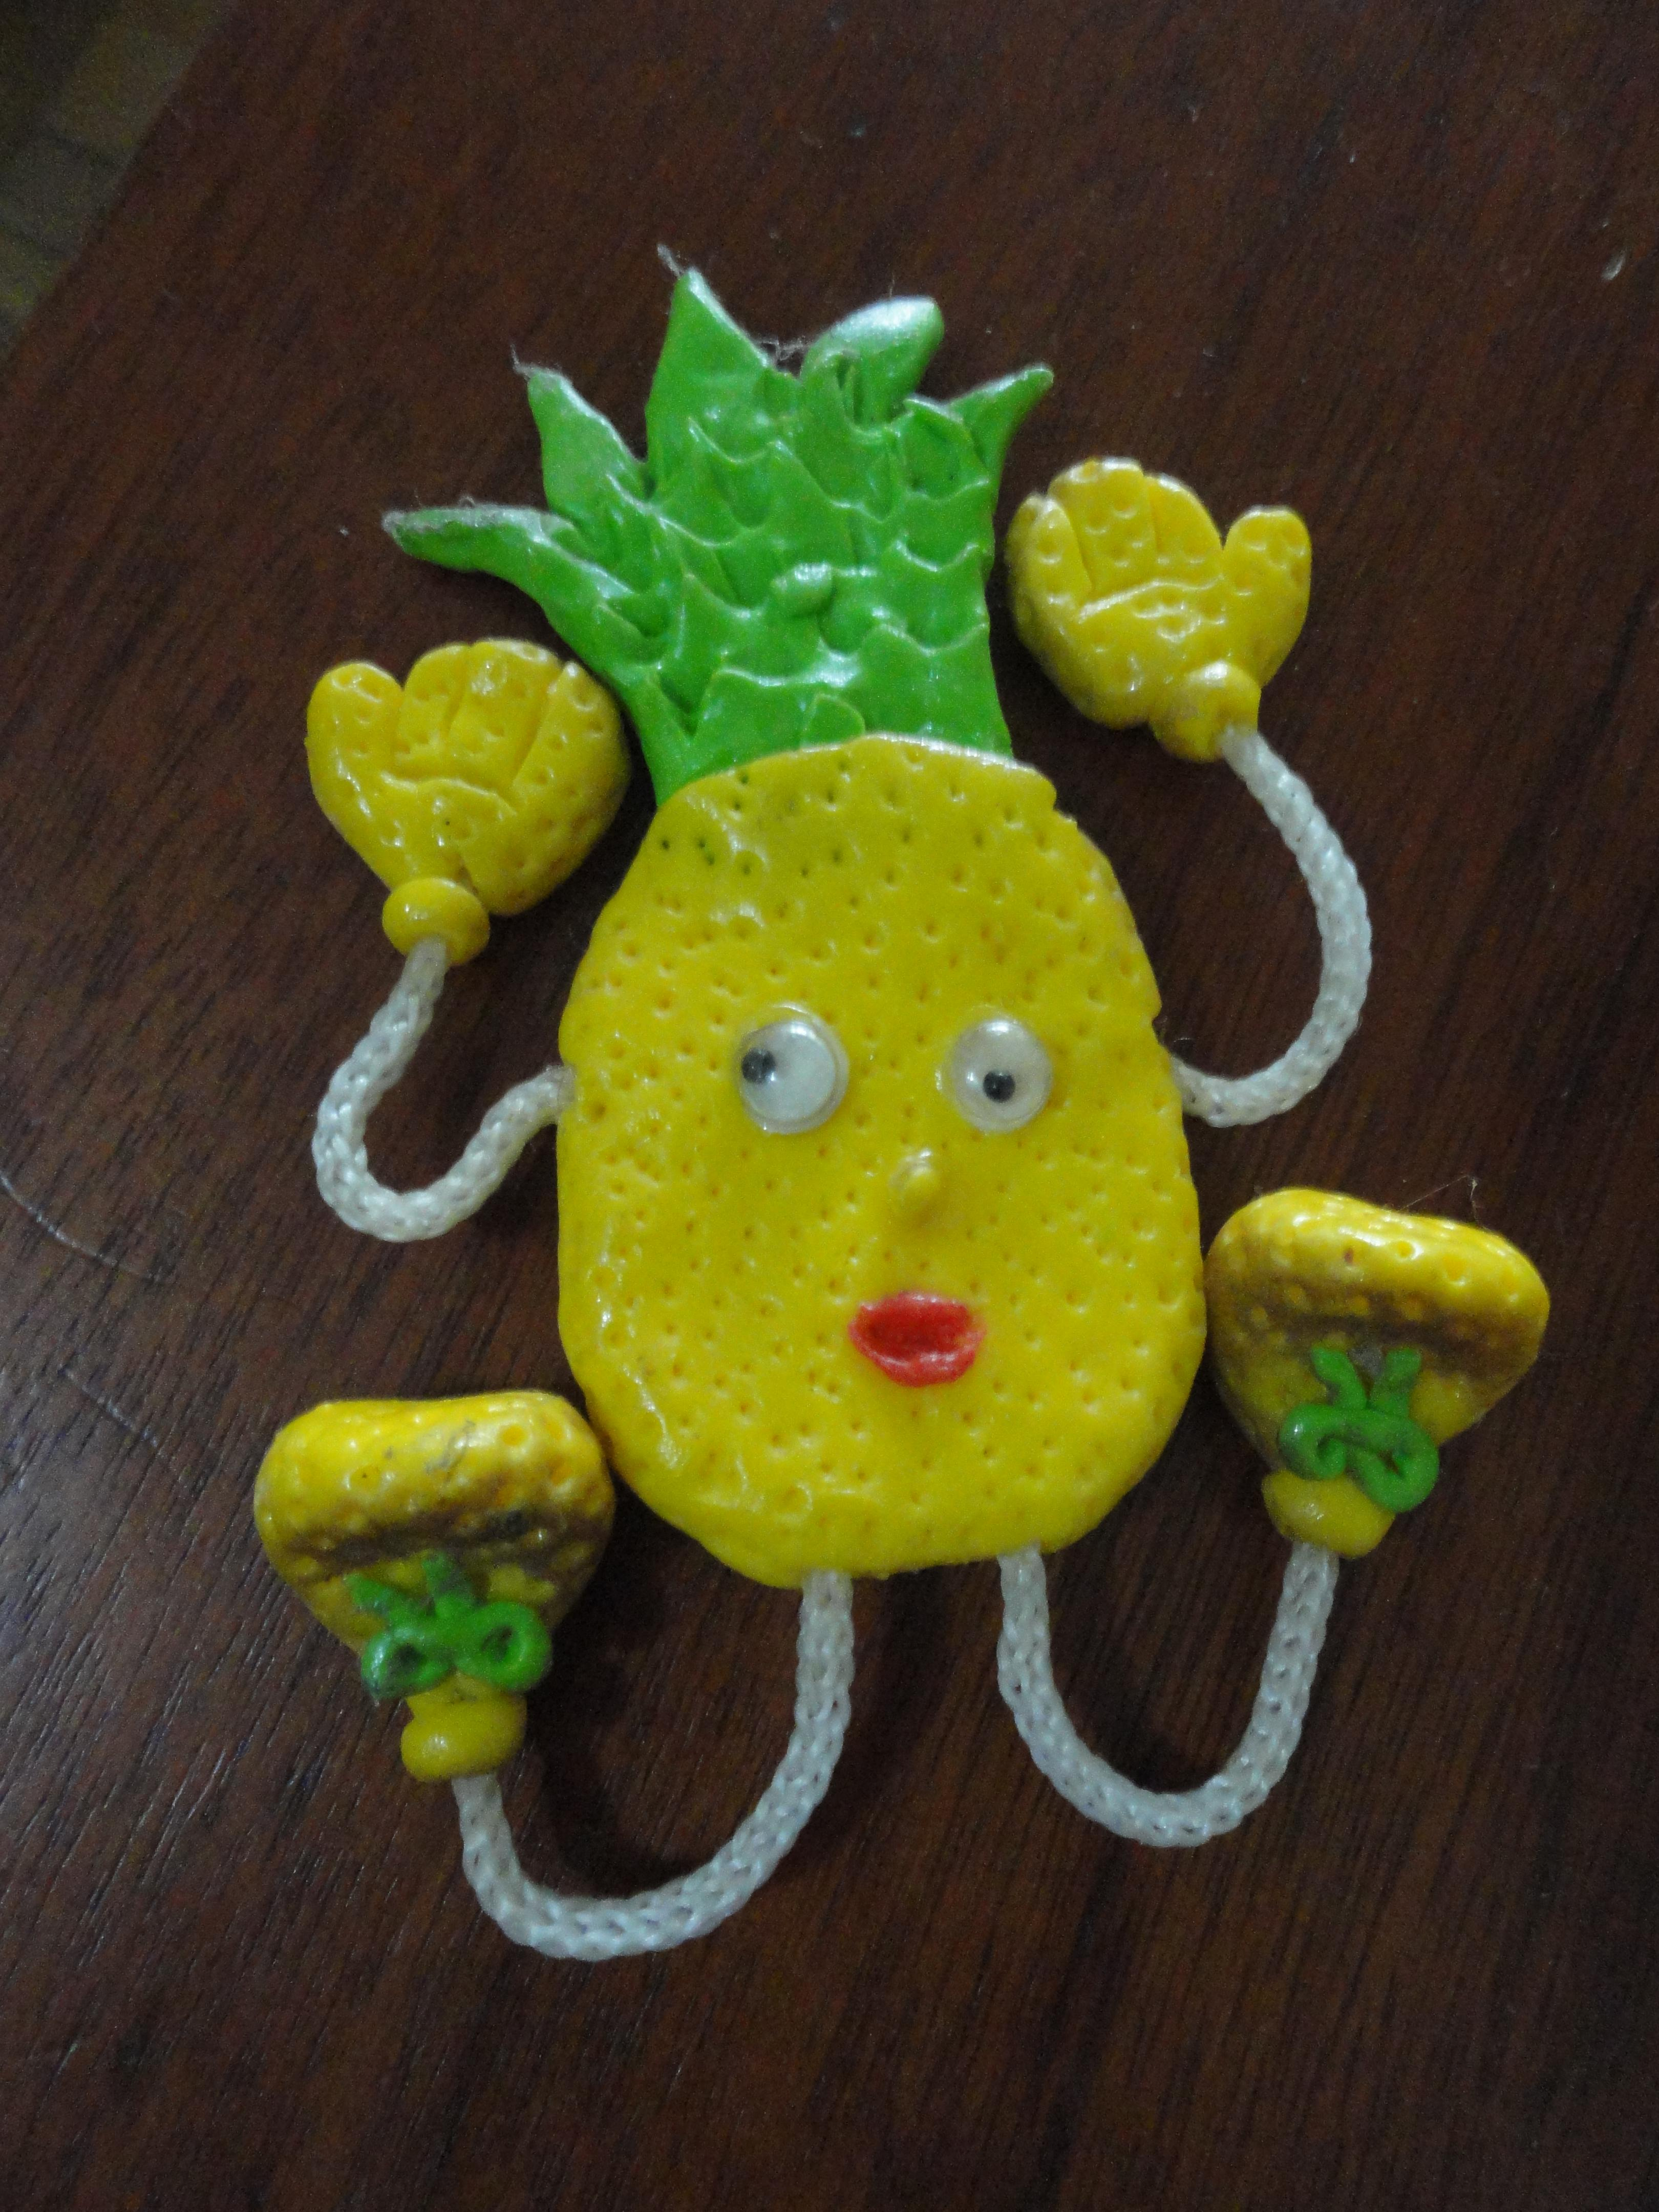 beyond the veil seeing god in the day to day if i see a porcupine in a pineapple suit i might stare at the strange spectacle i might even ask the porcupine why it is dressed like a pineapple